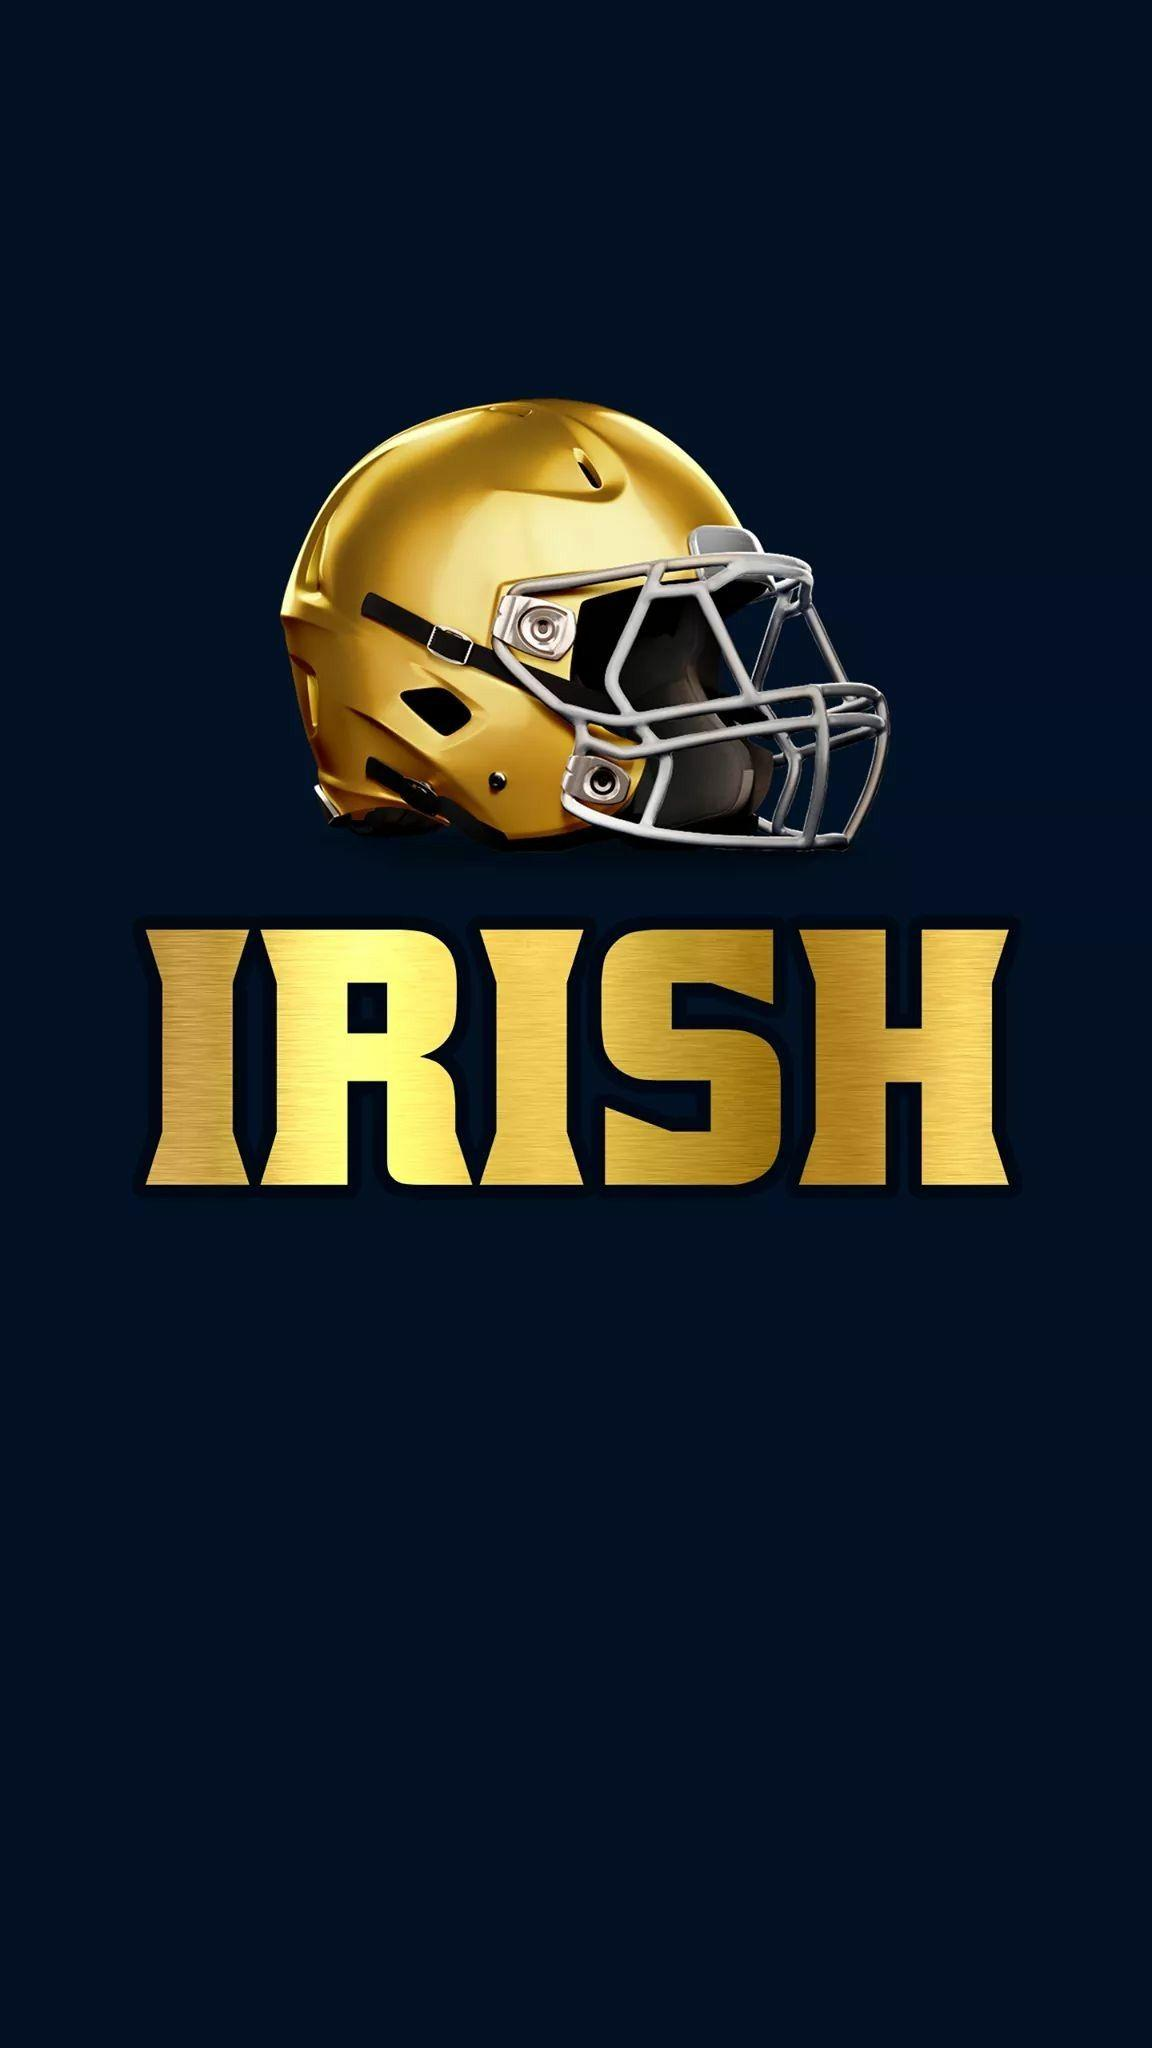 Notre dame fighting irish football wallpapers wallpaper cave - Notre dame football wallpaper ...